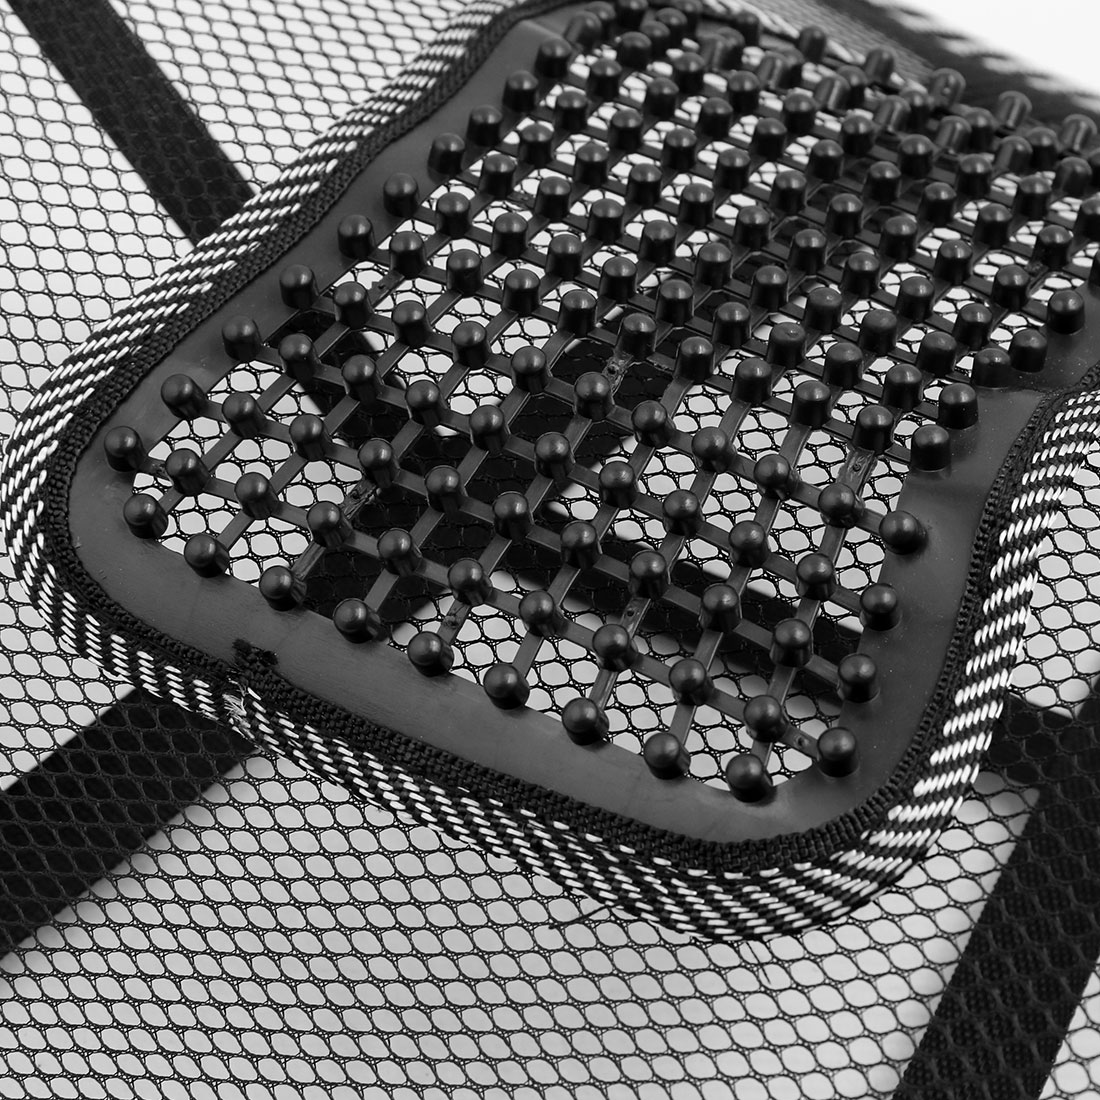 Black White Waist Lumbar Massage Mesh Cushion Back Support Pad for Car Office - image 3 of 5